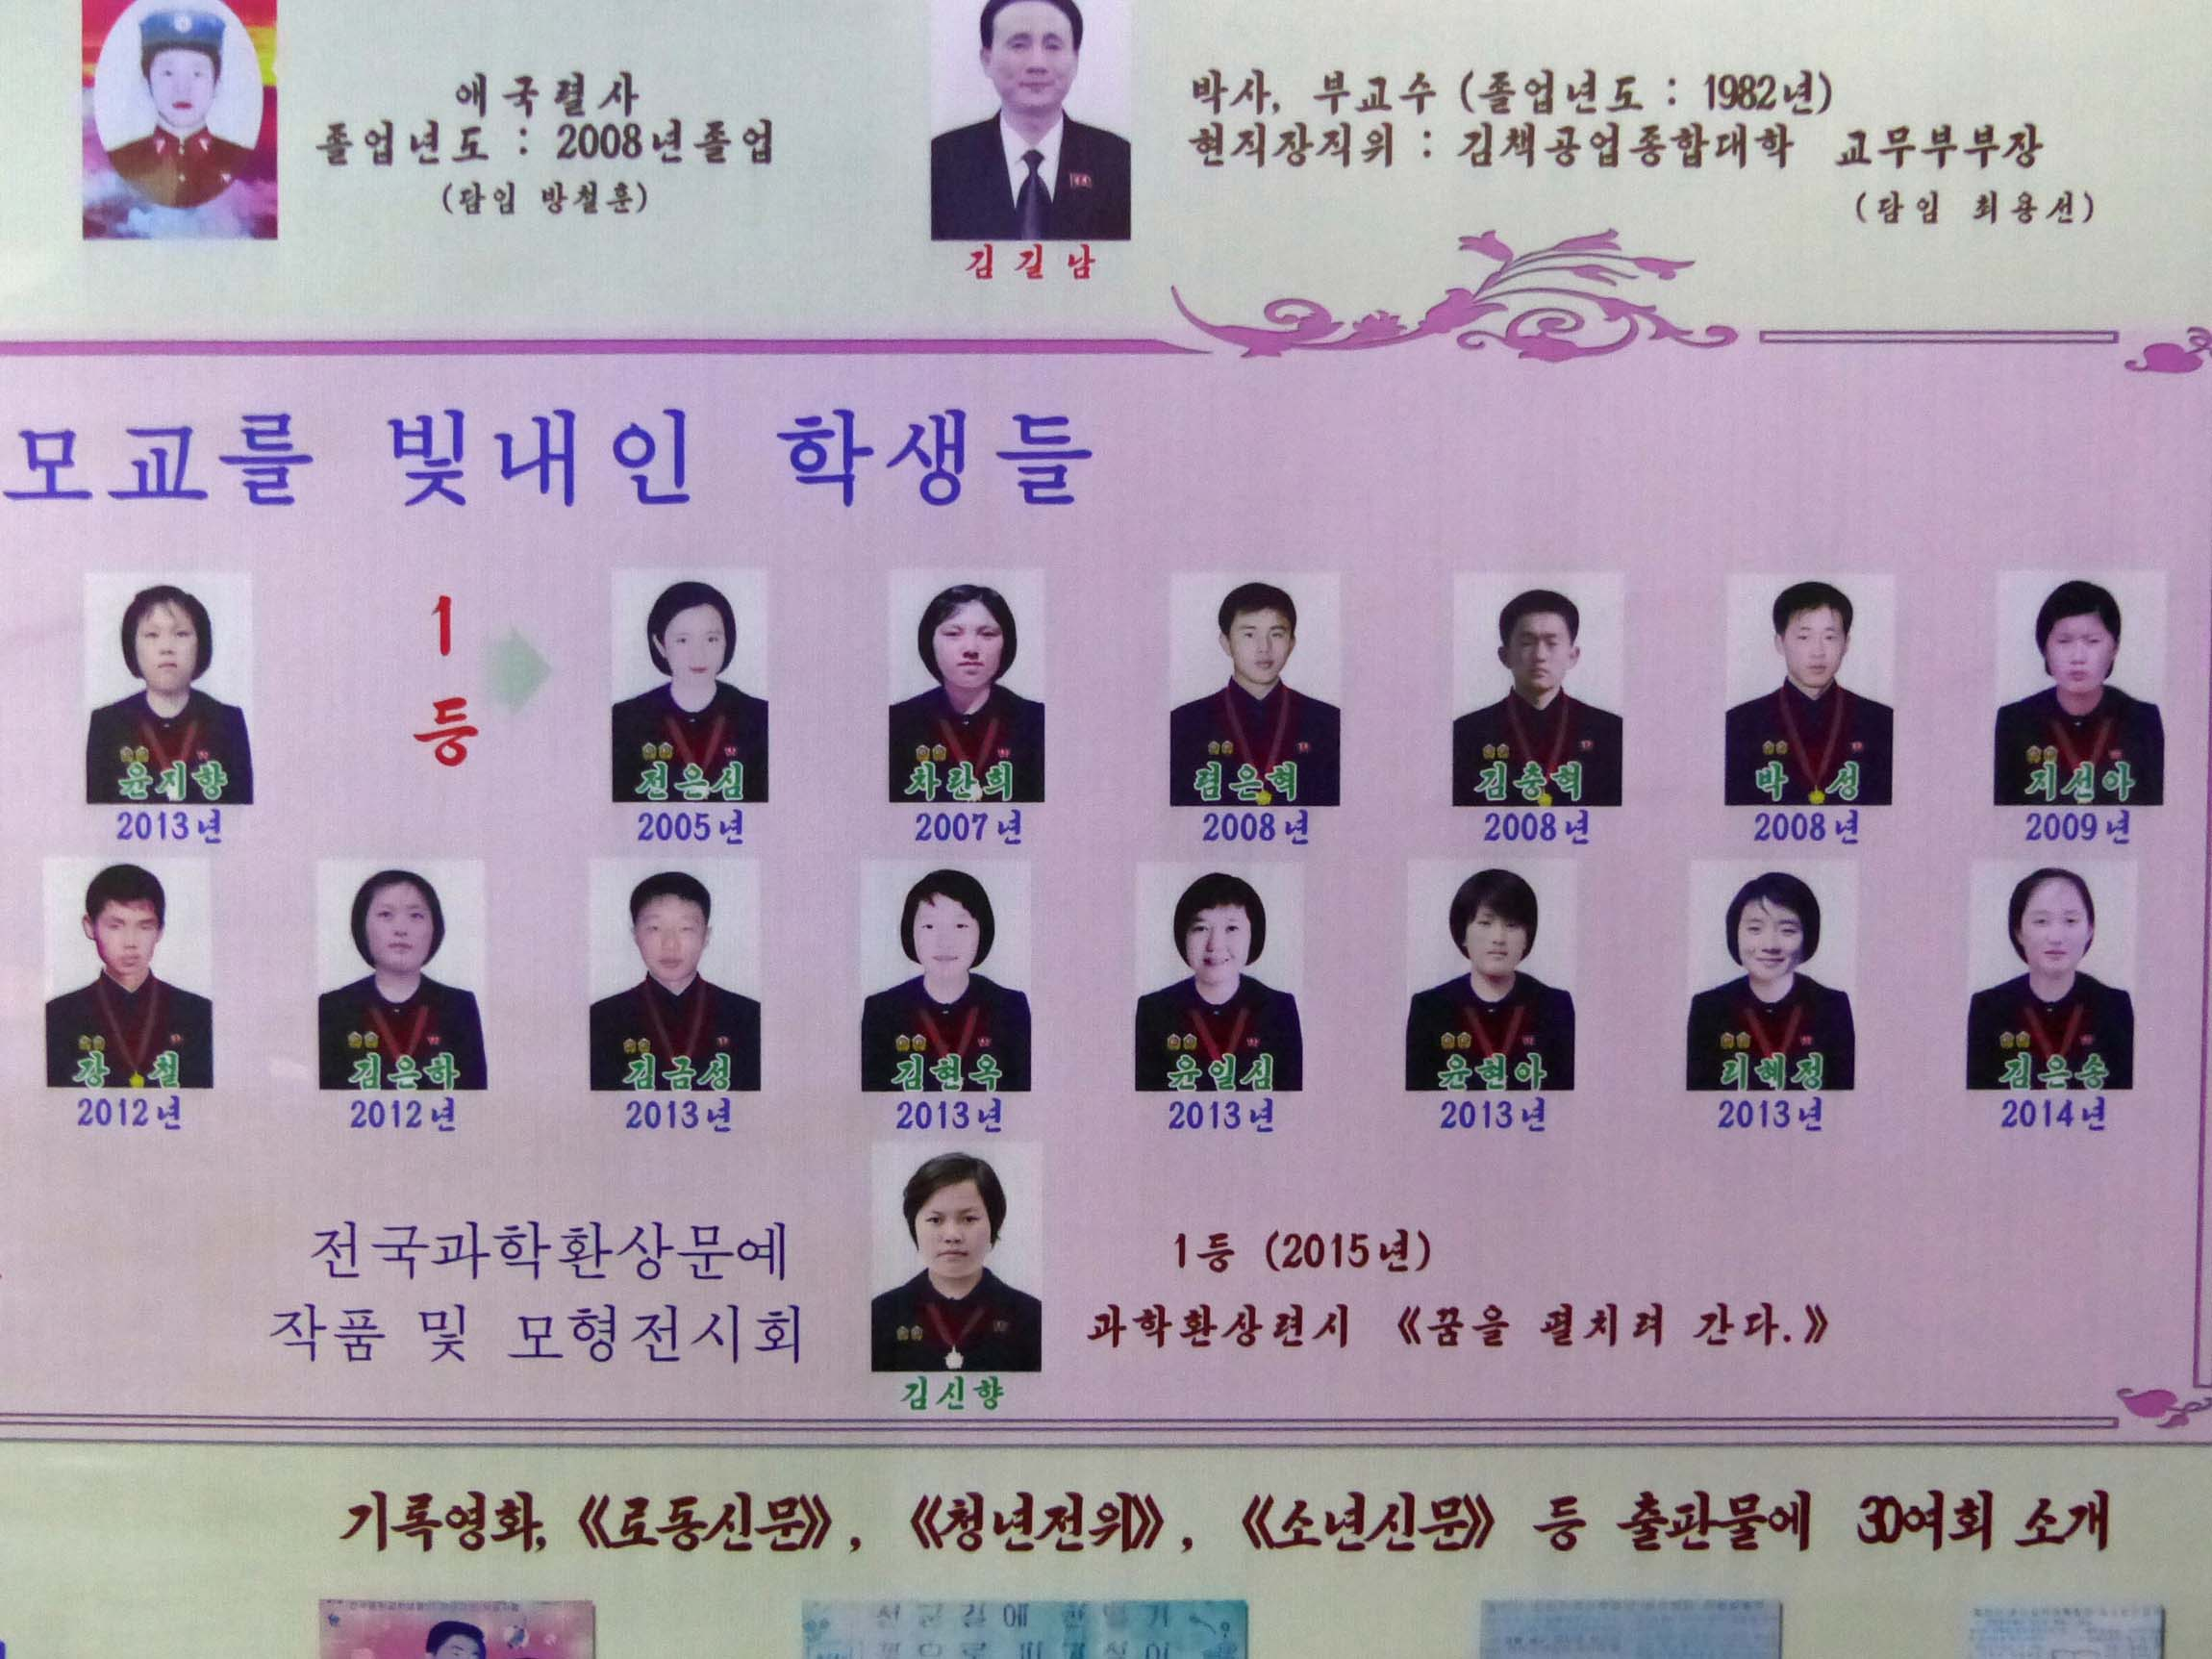 Poster showing faces of students with dates